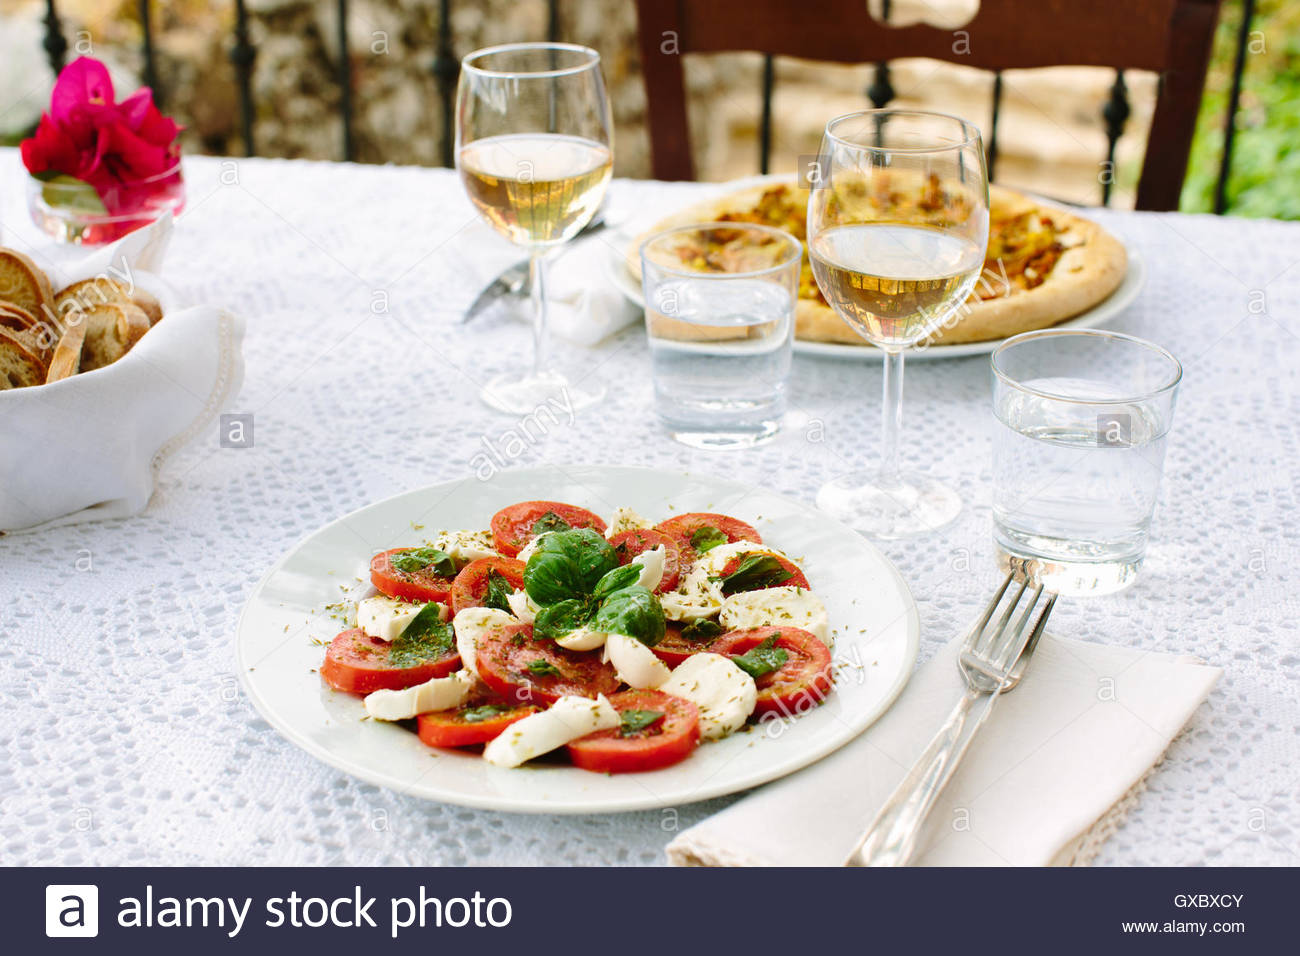 Al fresco table with rustic pizza and caprese salad, Cilento, Italy - Stock Image